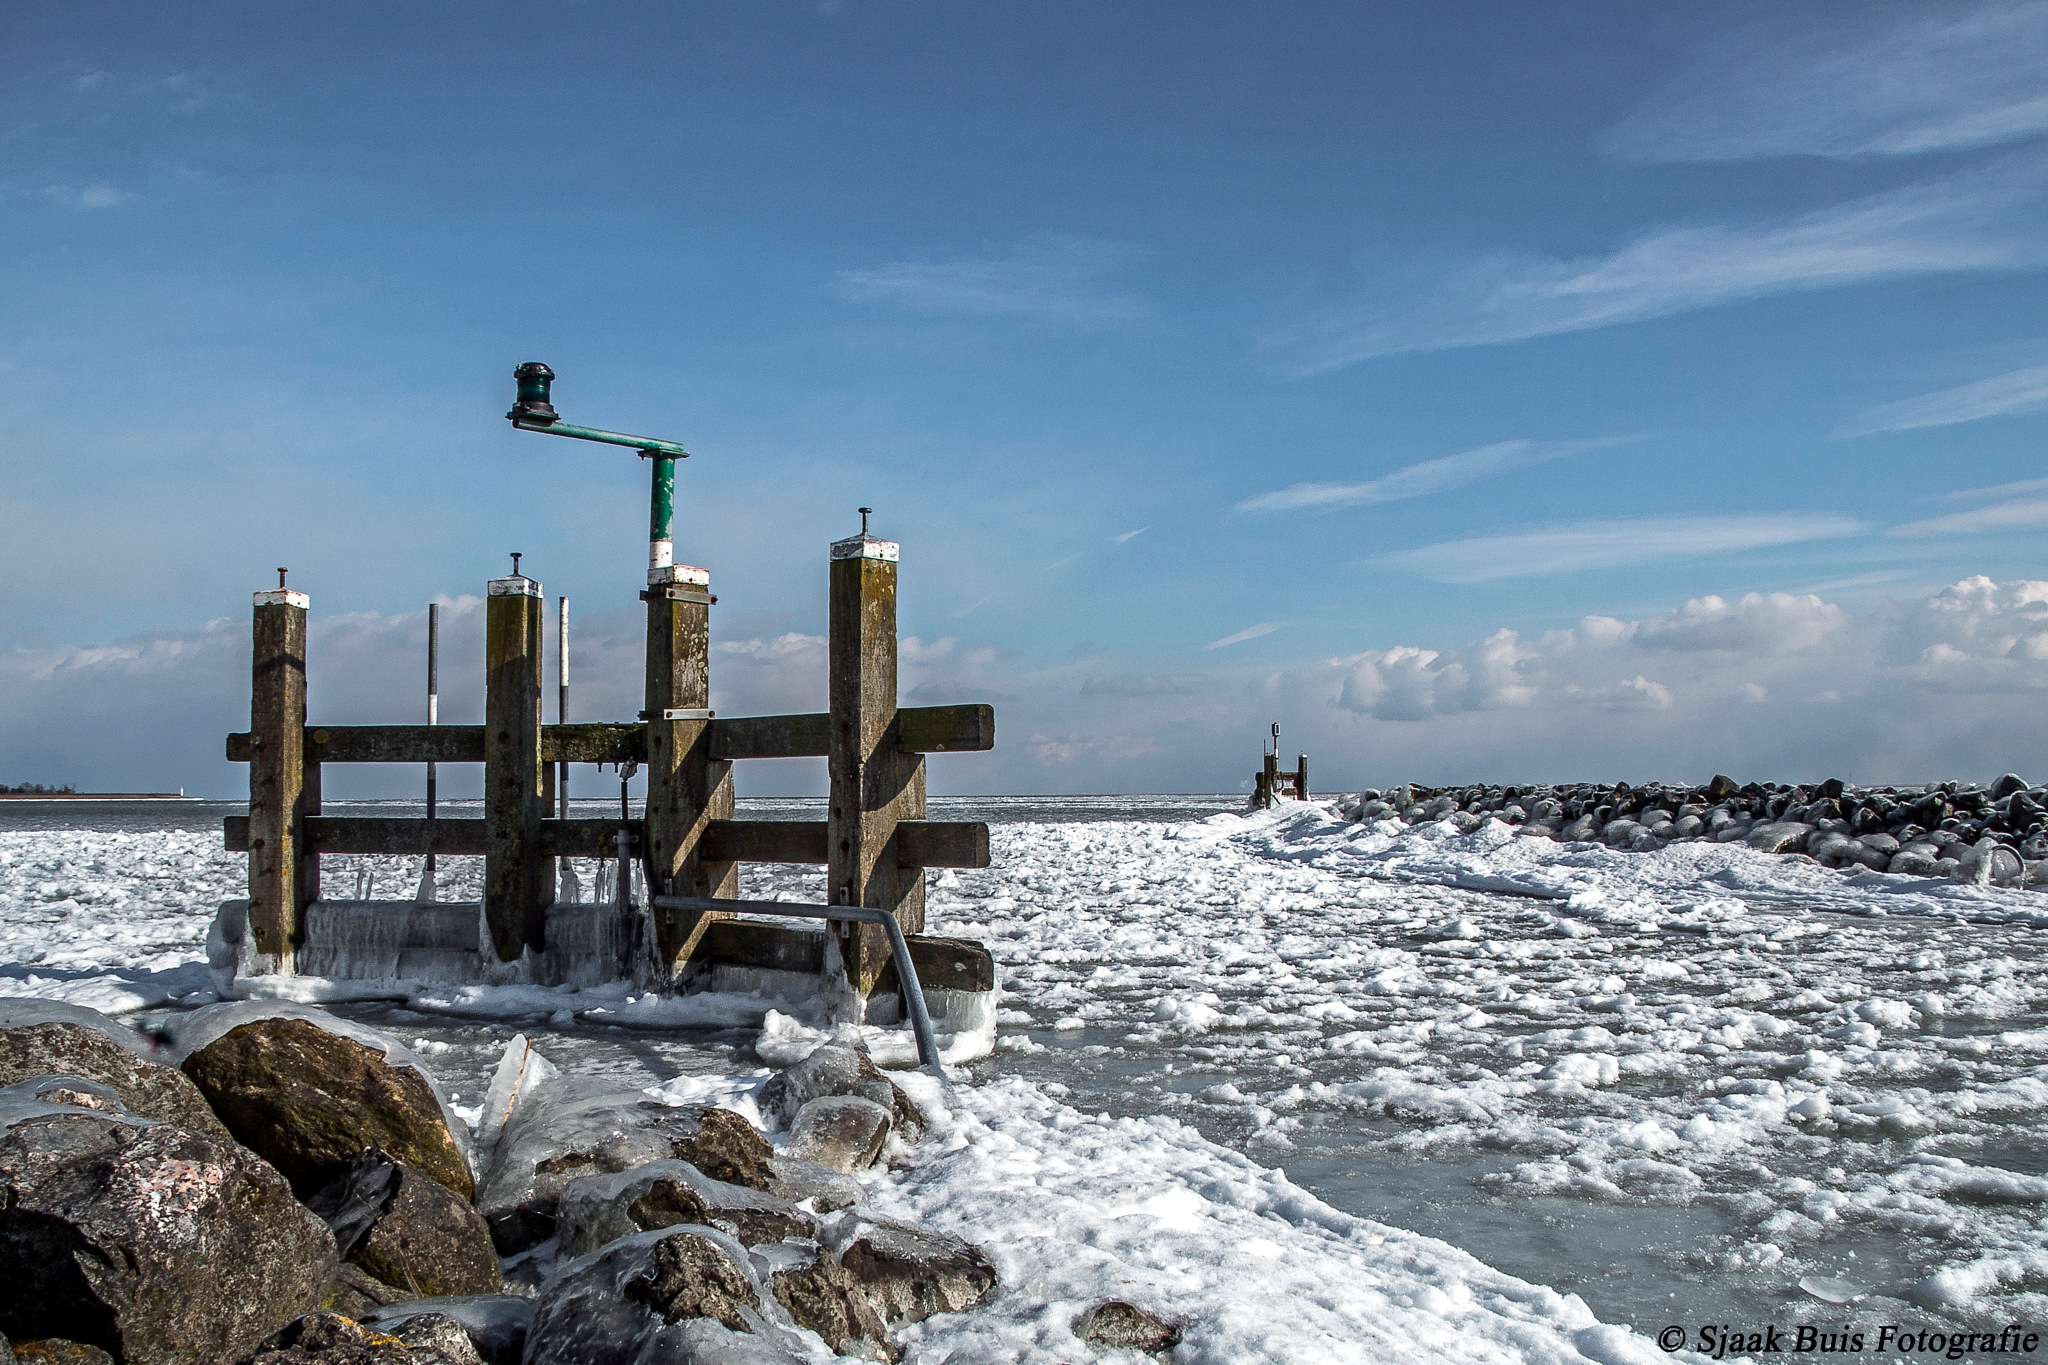 Entrance of the harbor of Wijdenes full of ice (NH) by Sjaak Buis